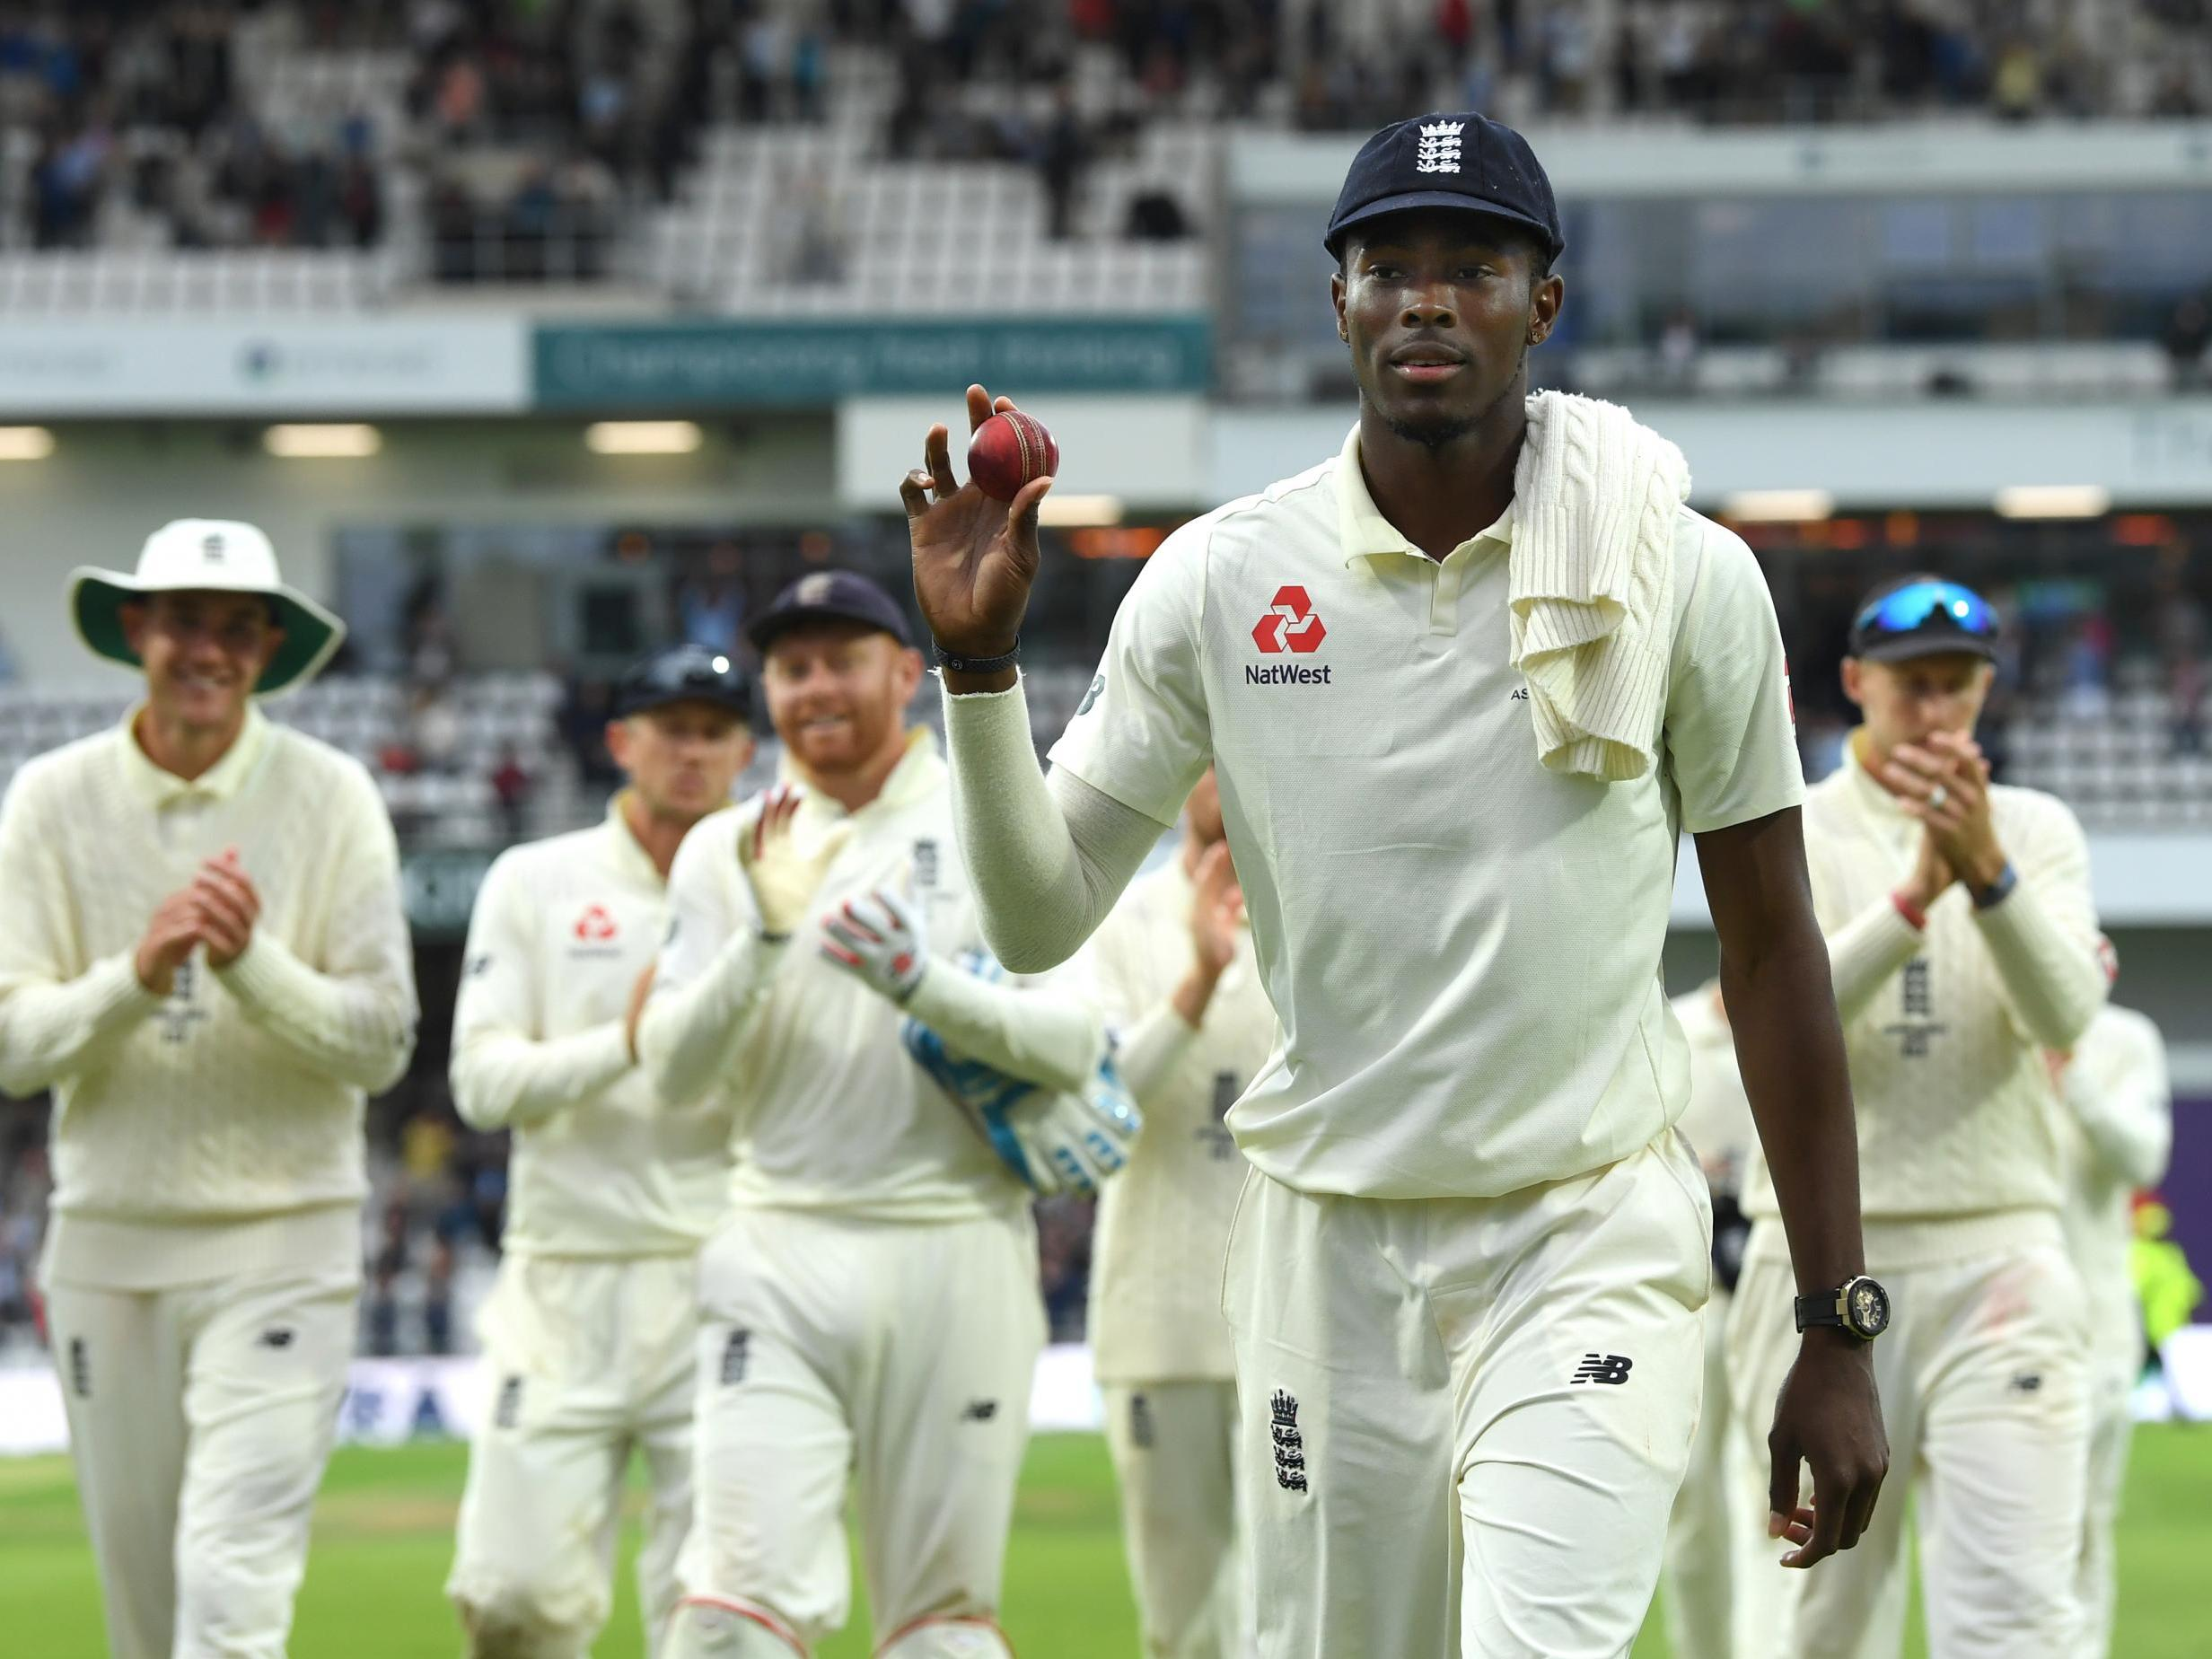 Ashes: We select an England team to win back the urn from Australia in 2021/22